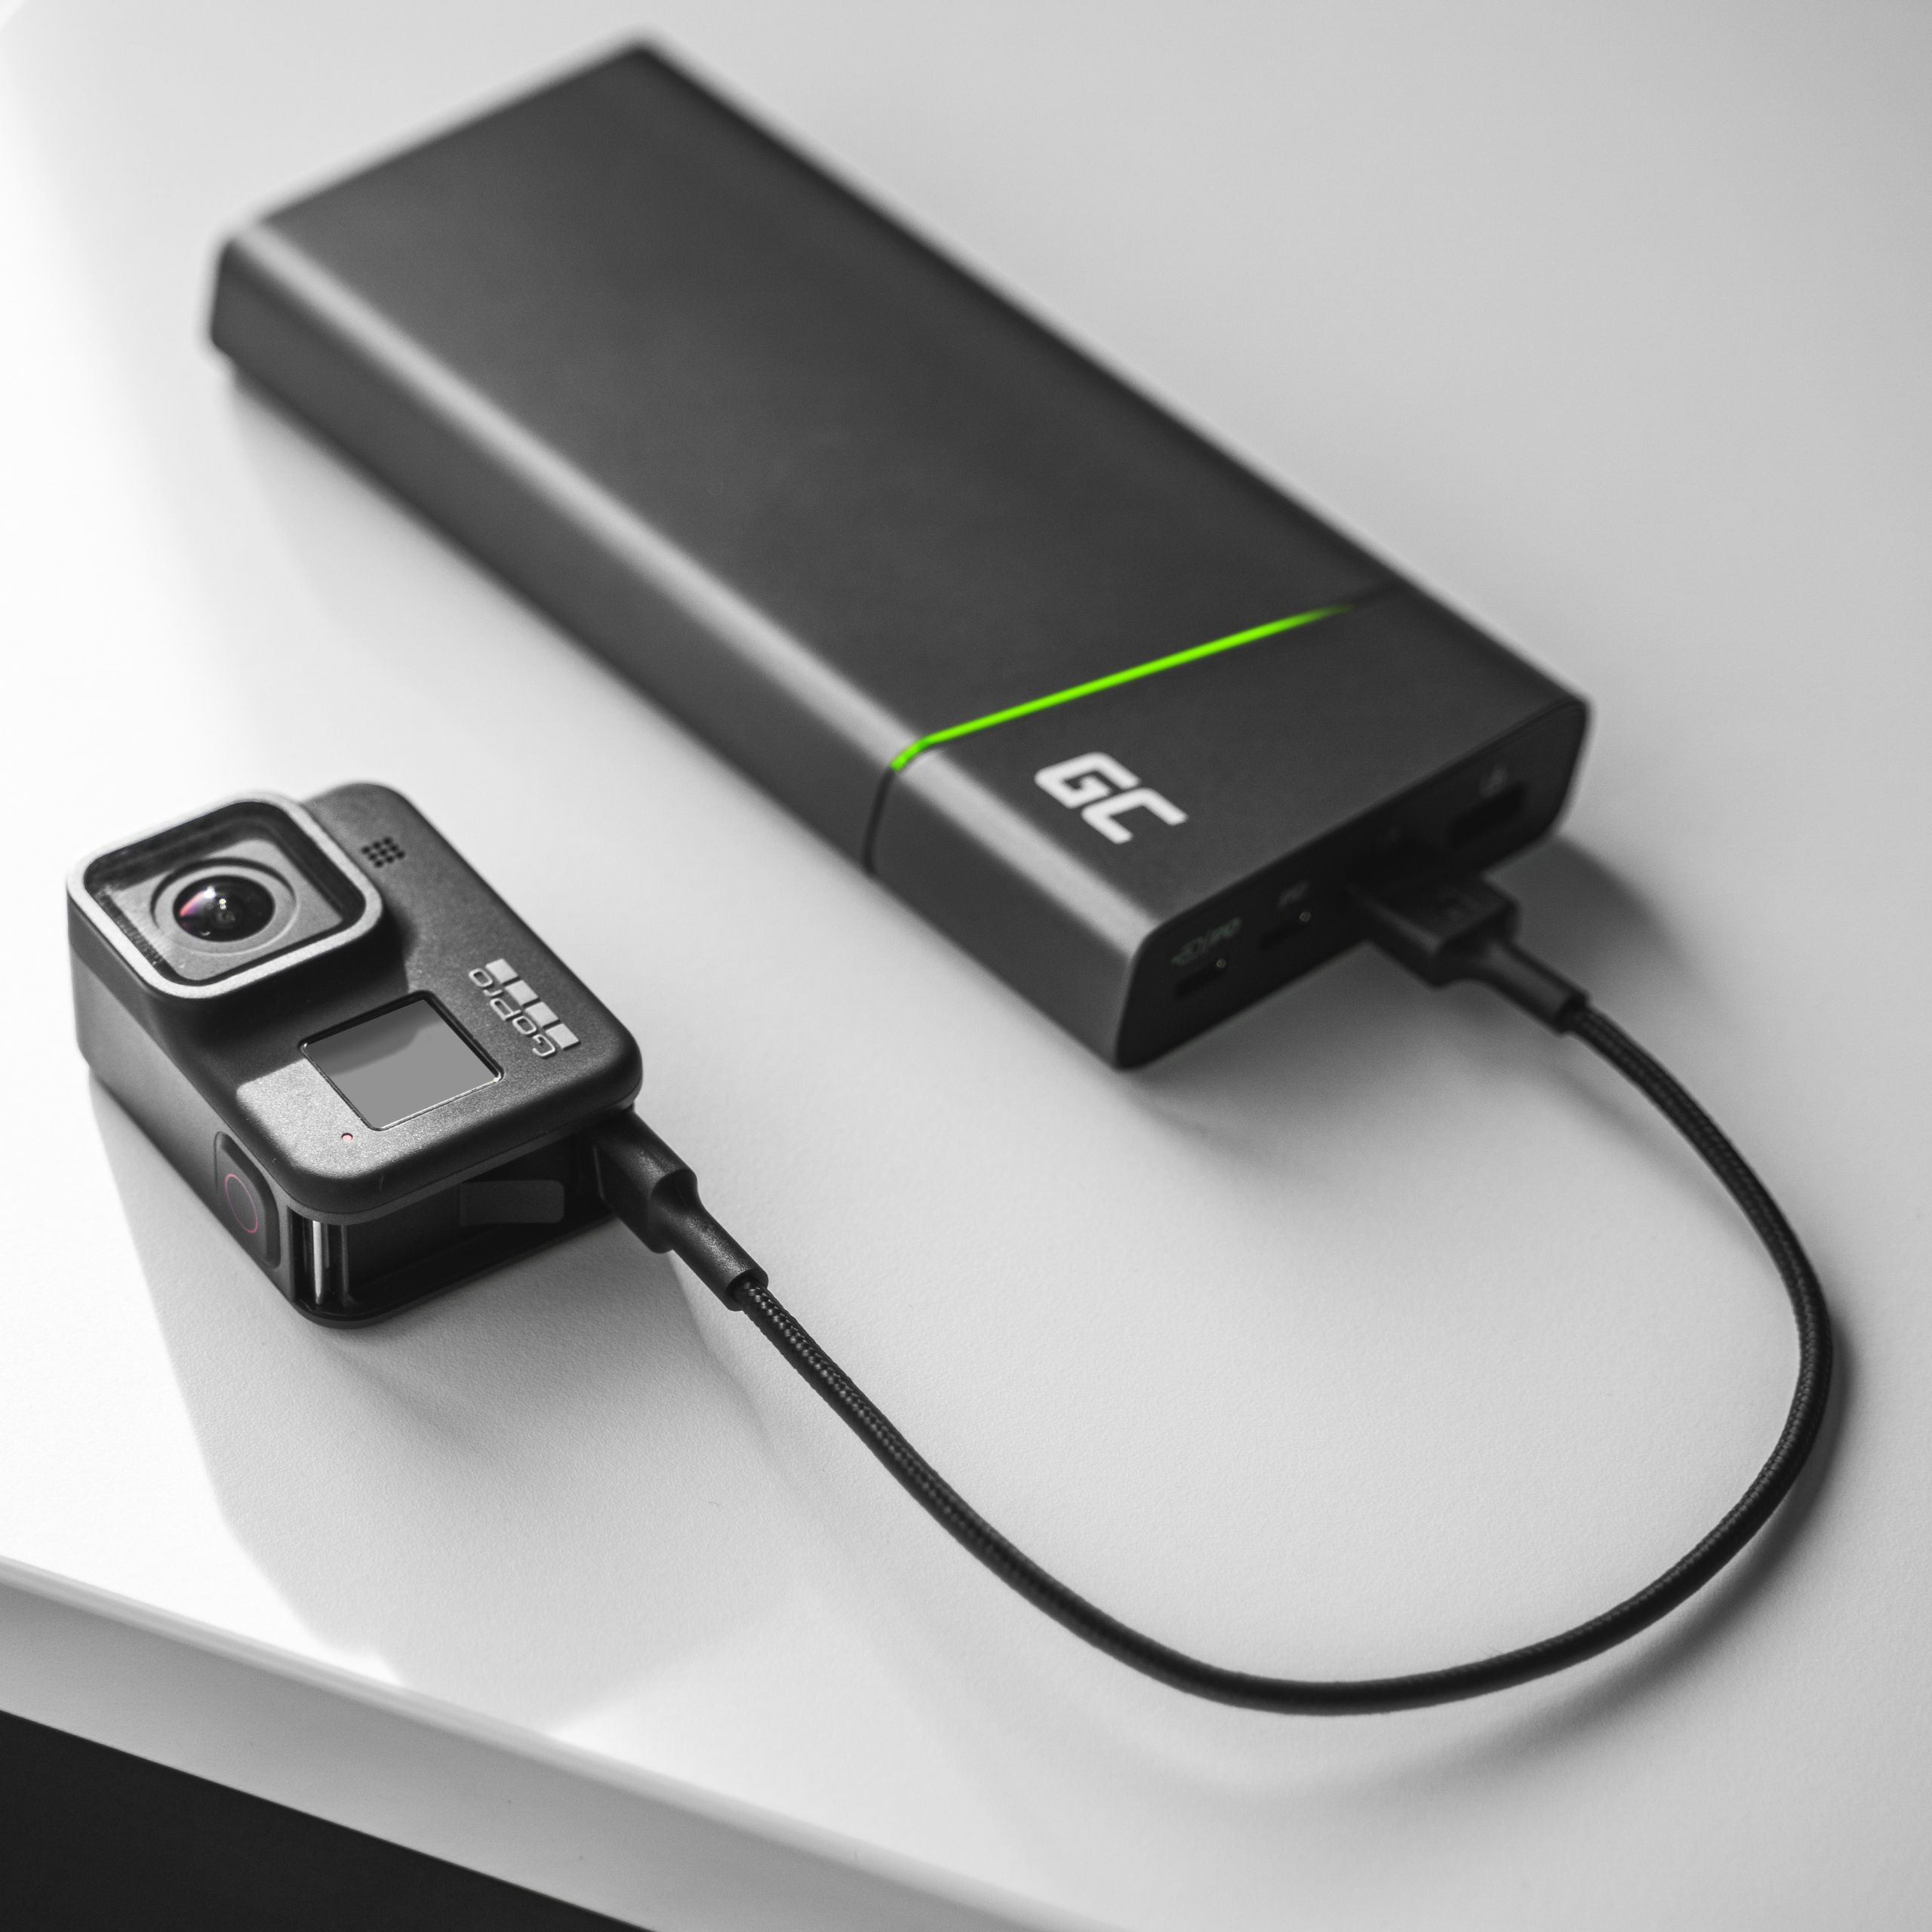 Cable Green Cell GC PowerStream USB-A - USB-C 30cm quick charge Ultra Charge, QC 3.0